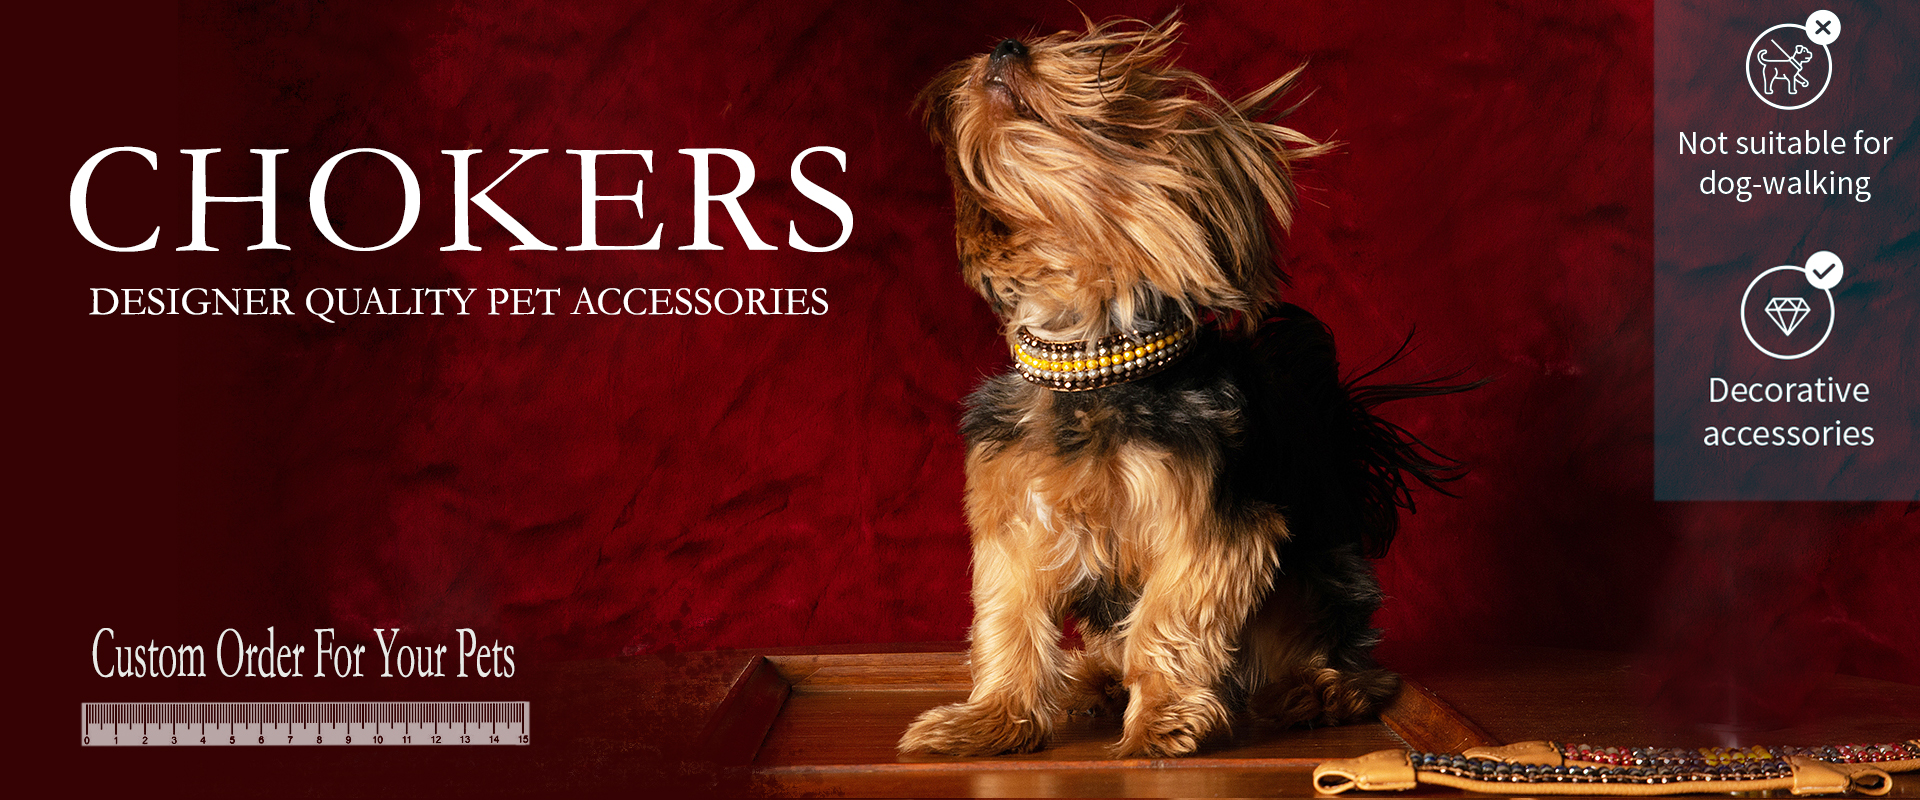 Chokers | Designer-quality pet accessories by zikos